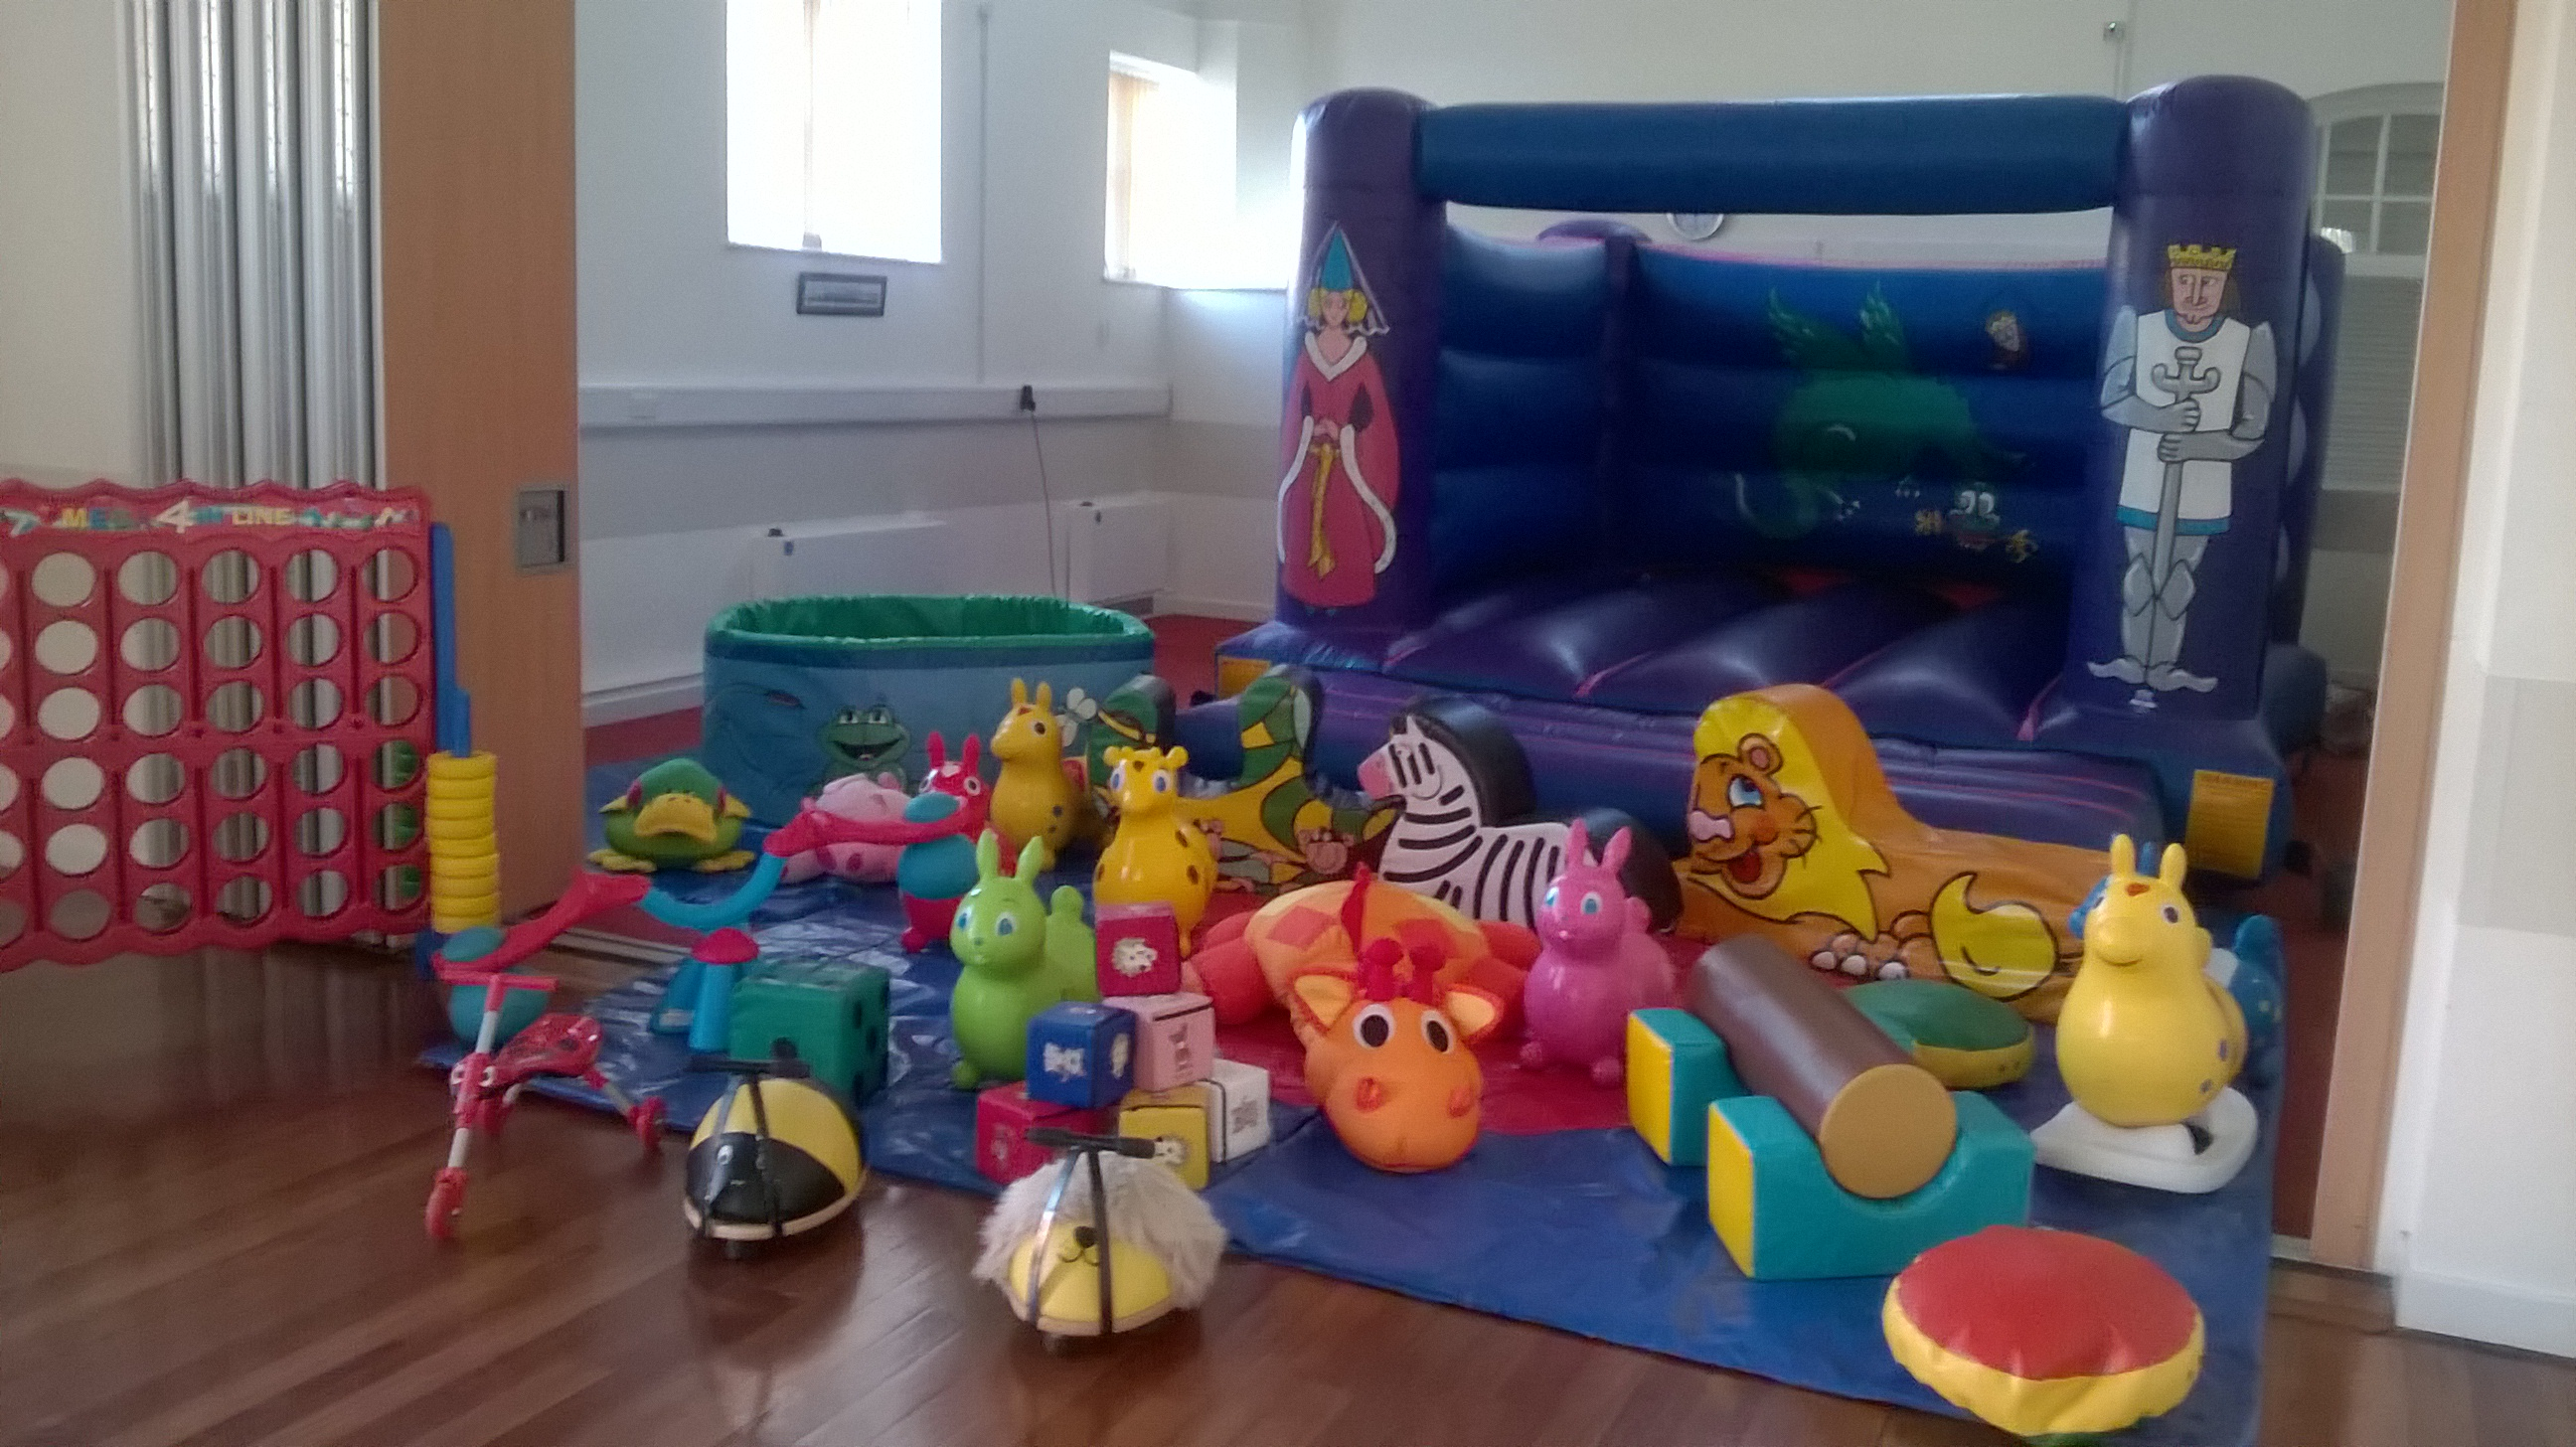 Knights boucy castles hire in Woolston Southampton, Christening party